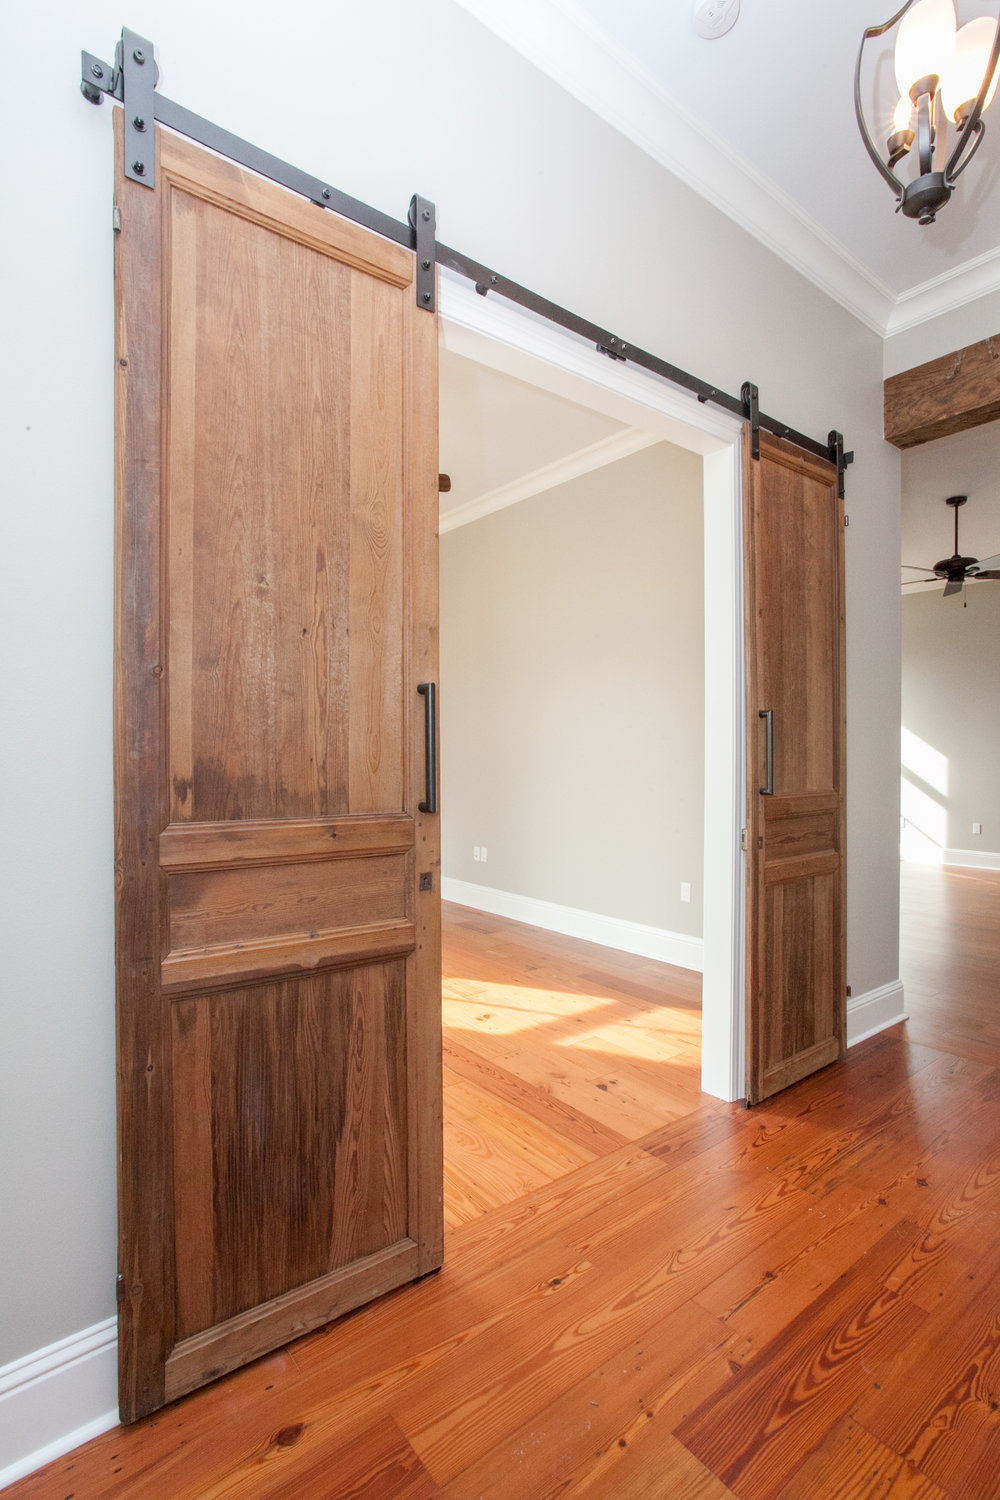 antique barn doors on sliders - Post - The Corbel